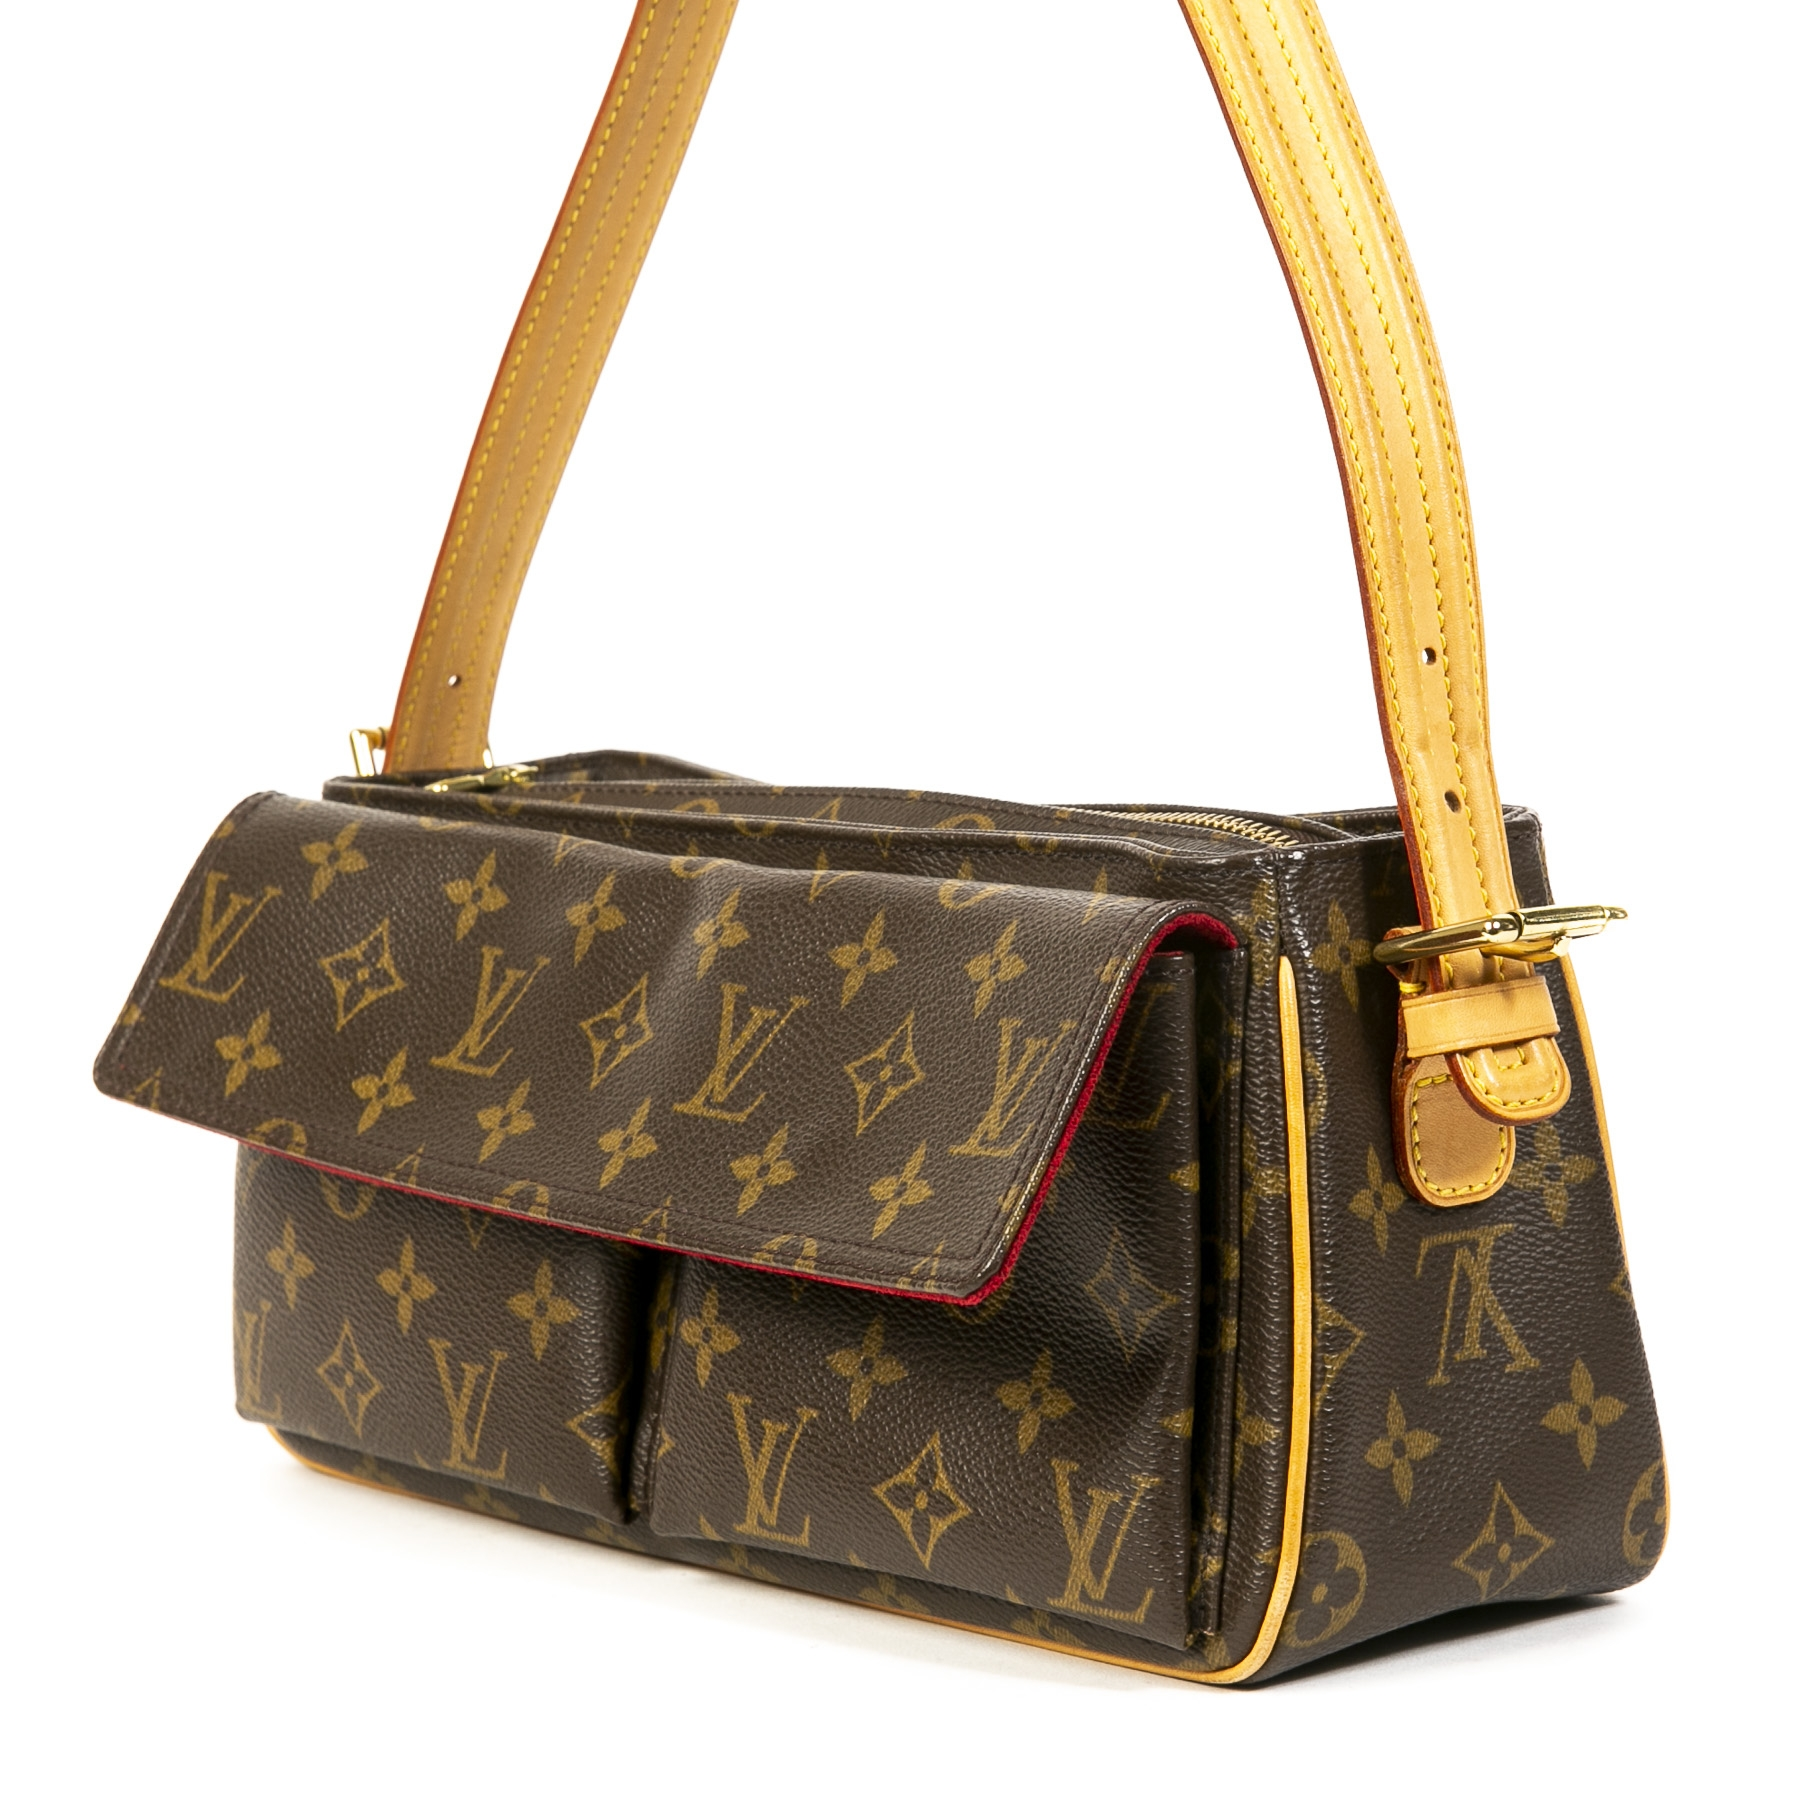 We buy and sell your authentic Louis Vuitton Monogram Viva Cité Shoulder Bag